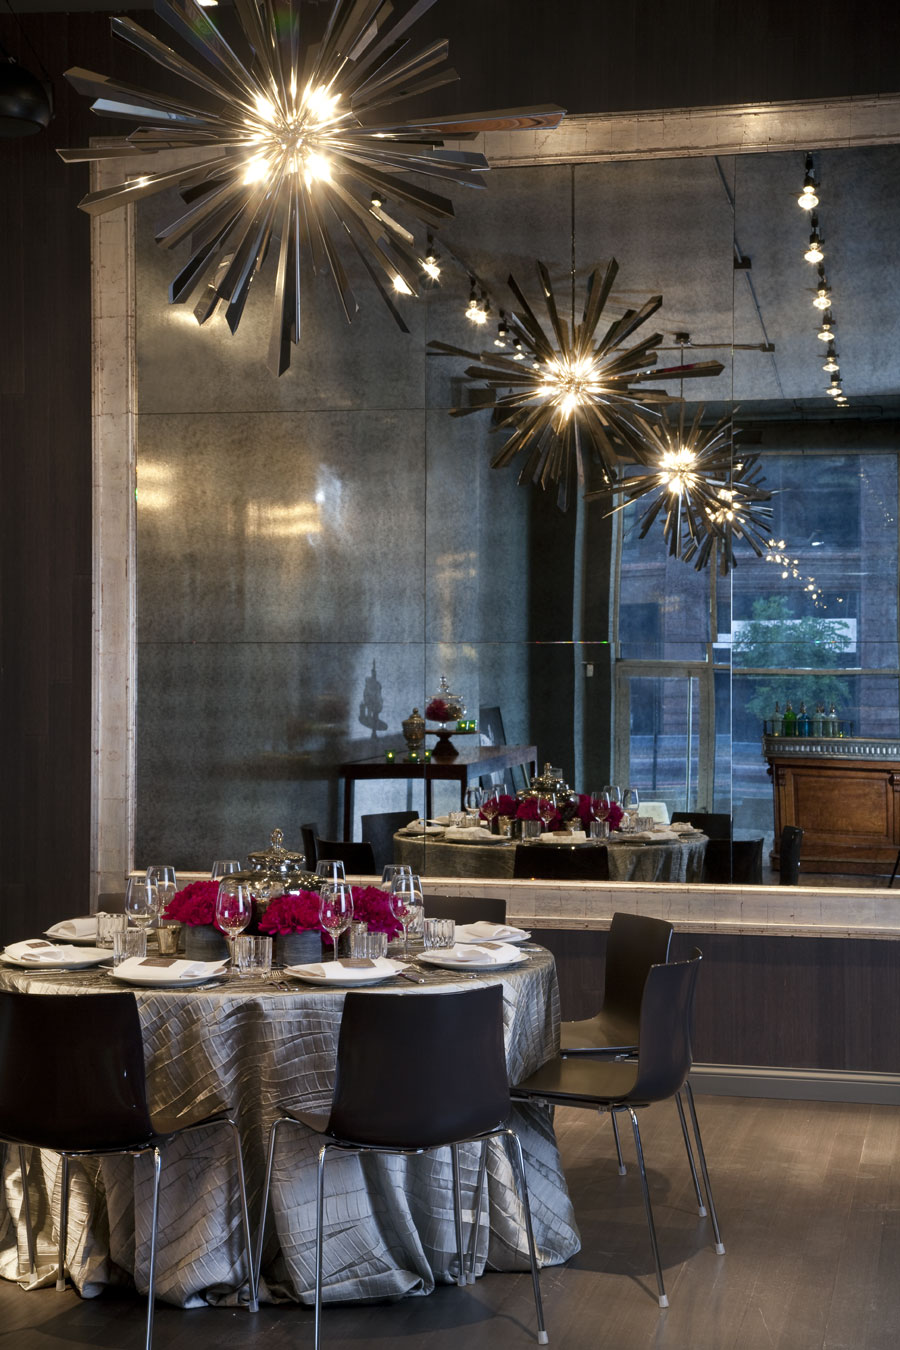 Introducing Private Dining By Sepia, A Stylish, Sexy Chicago Event Space  That Brings The Michelin Starred Sepia Experience To Life For Any Private  Occasion.